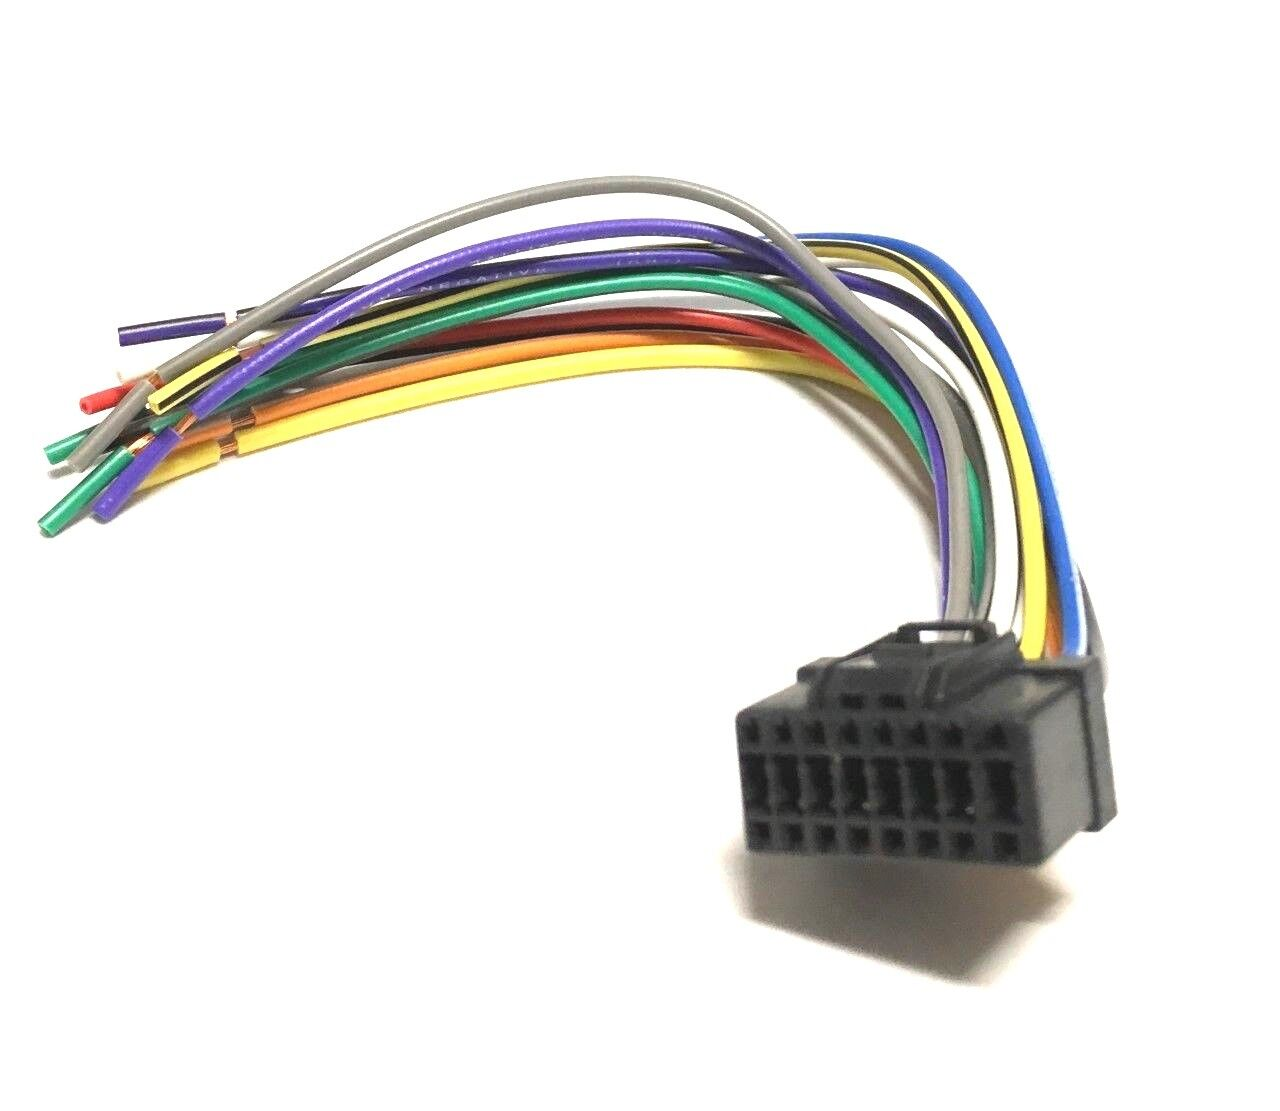 Wire Harness for Pioneer Deh-p880prs Dehp880prs *pay Today Ships Today* for  sale online | eBayeBay